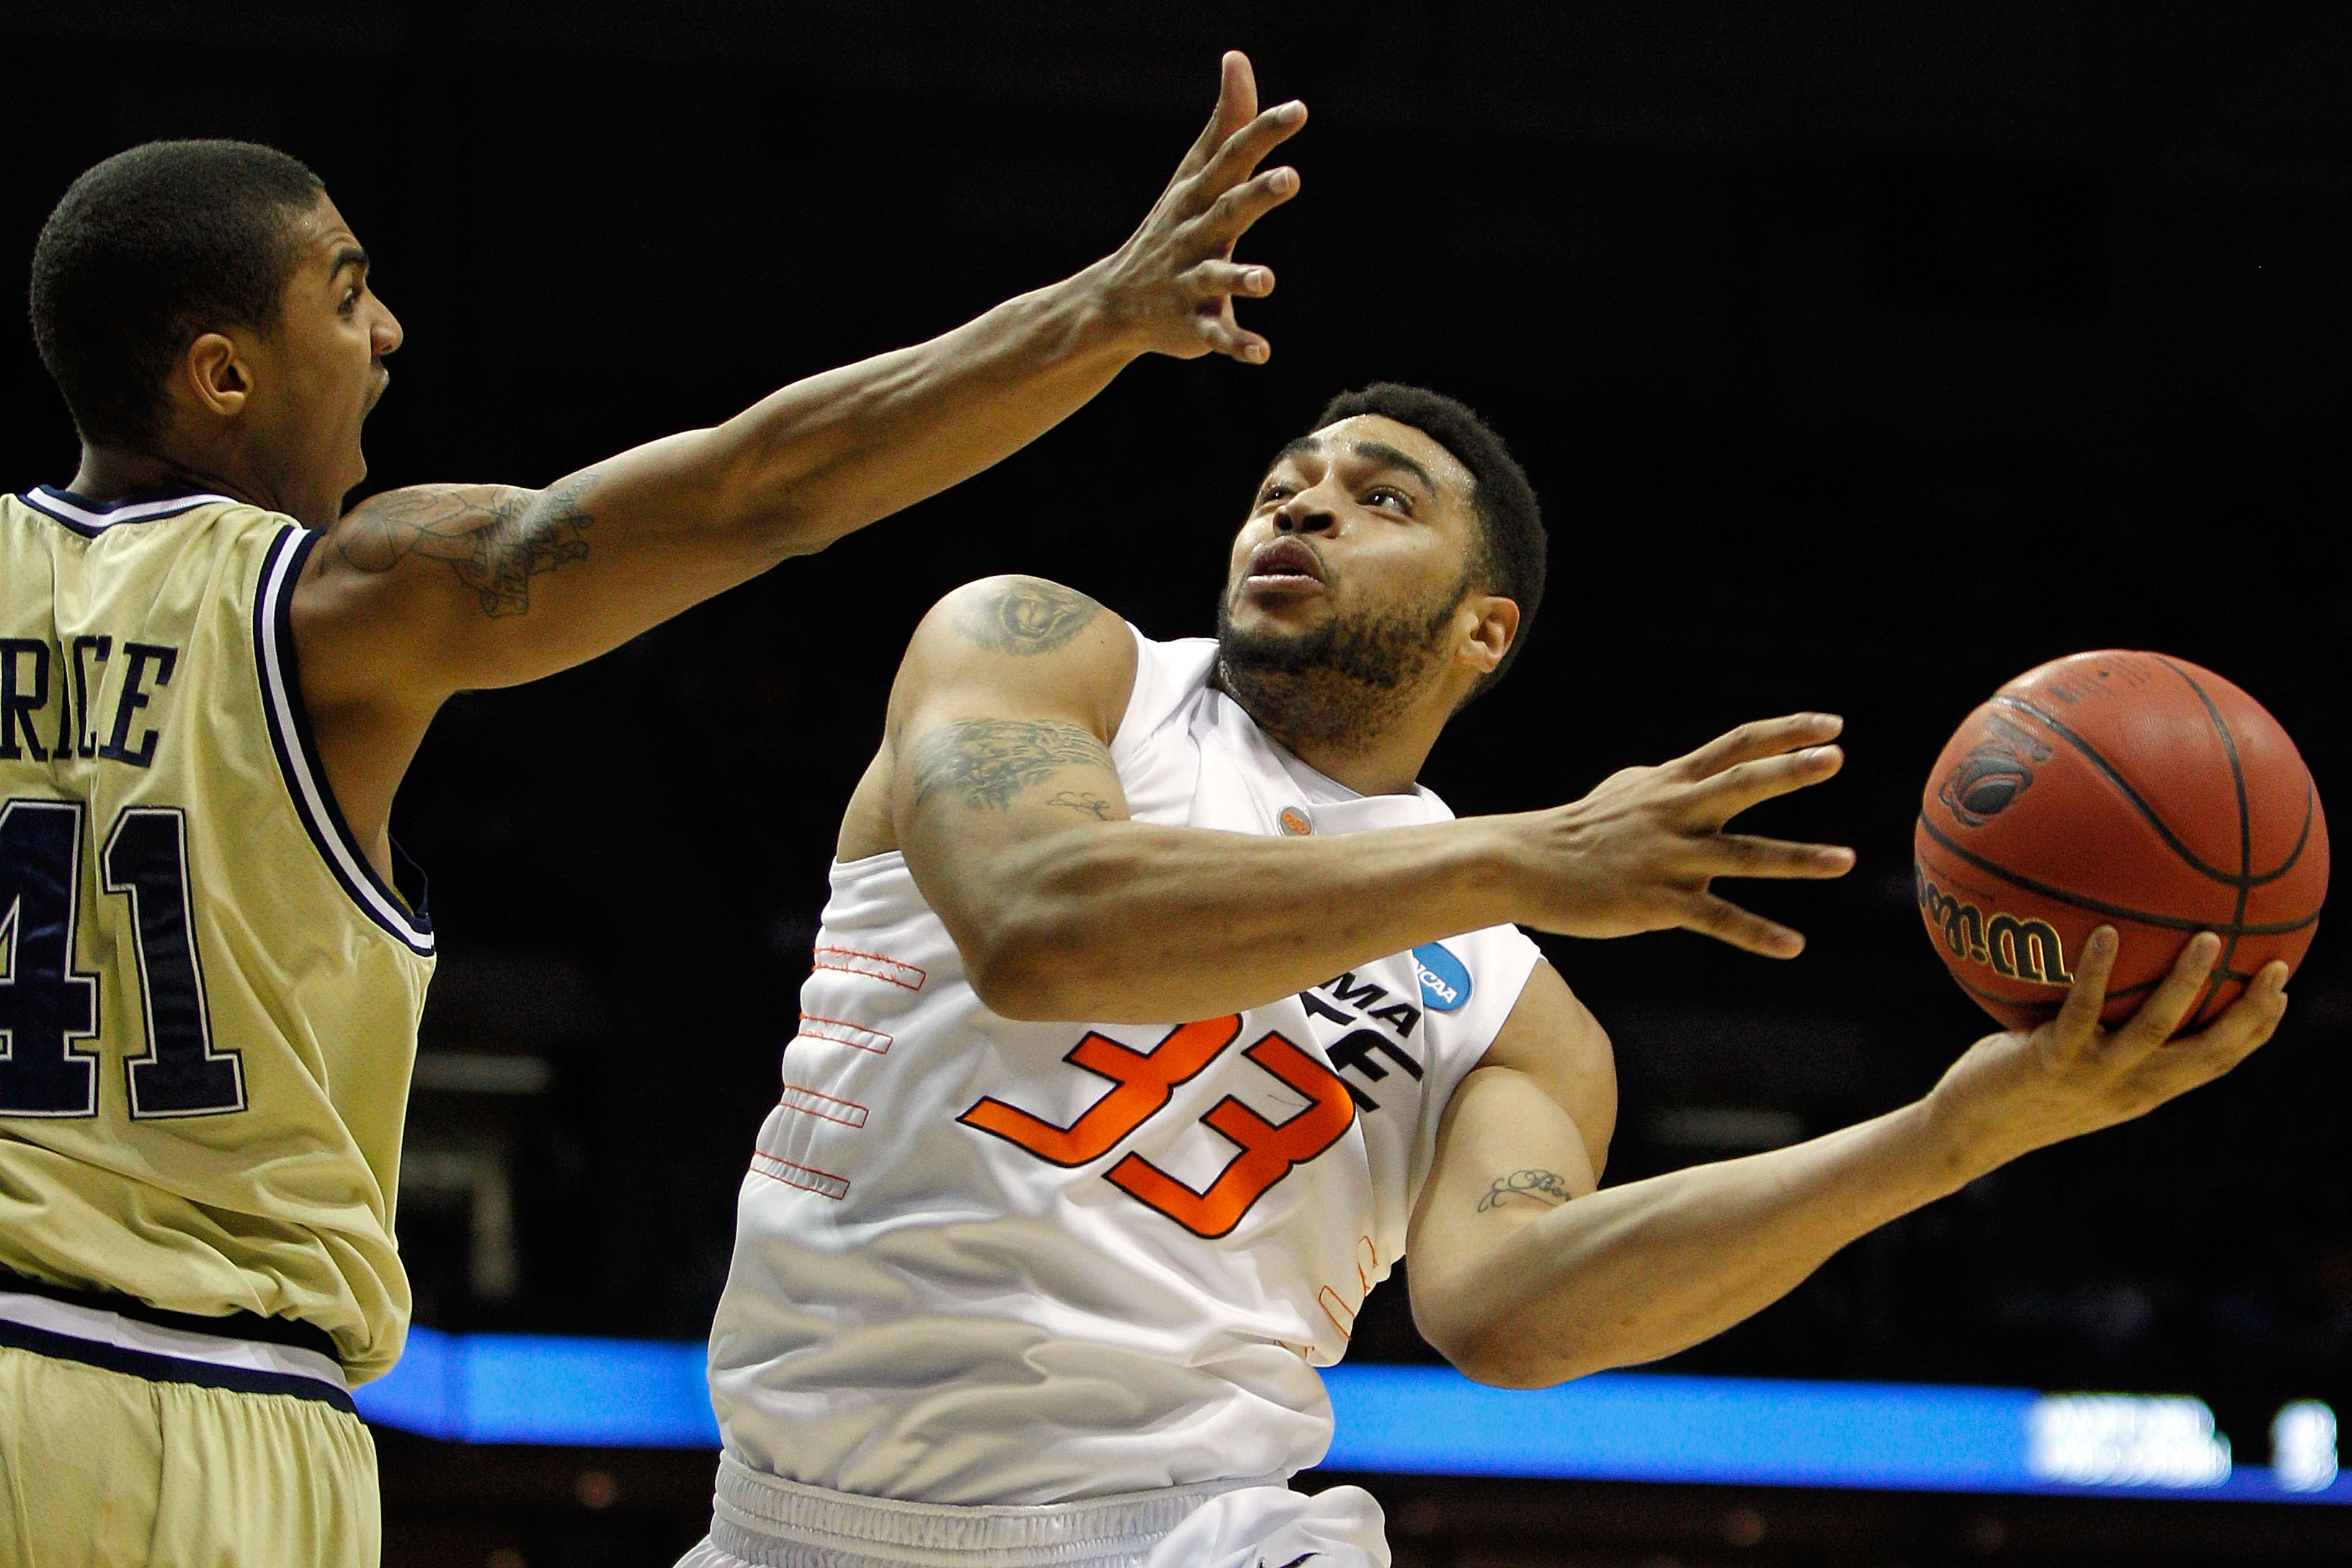 MILWAUKEE - MARCH 19:  Marshall Moses #33 of the Oklahoma State Cowboys goes up for a shot against Glen Rice Jr. #41 of the Georgia Tech Yellow Jackets in the first half during the first round of the 2010 NCAA men's basketball tournament at the Bradley Ce